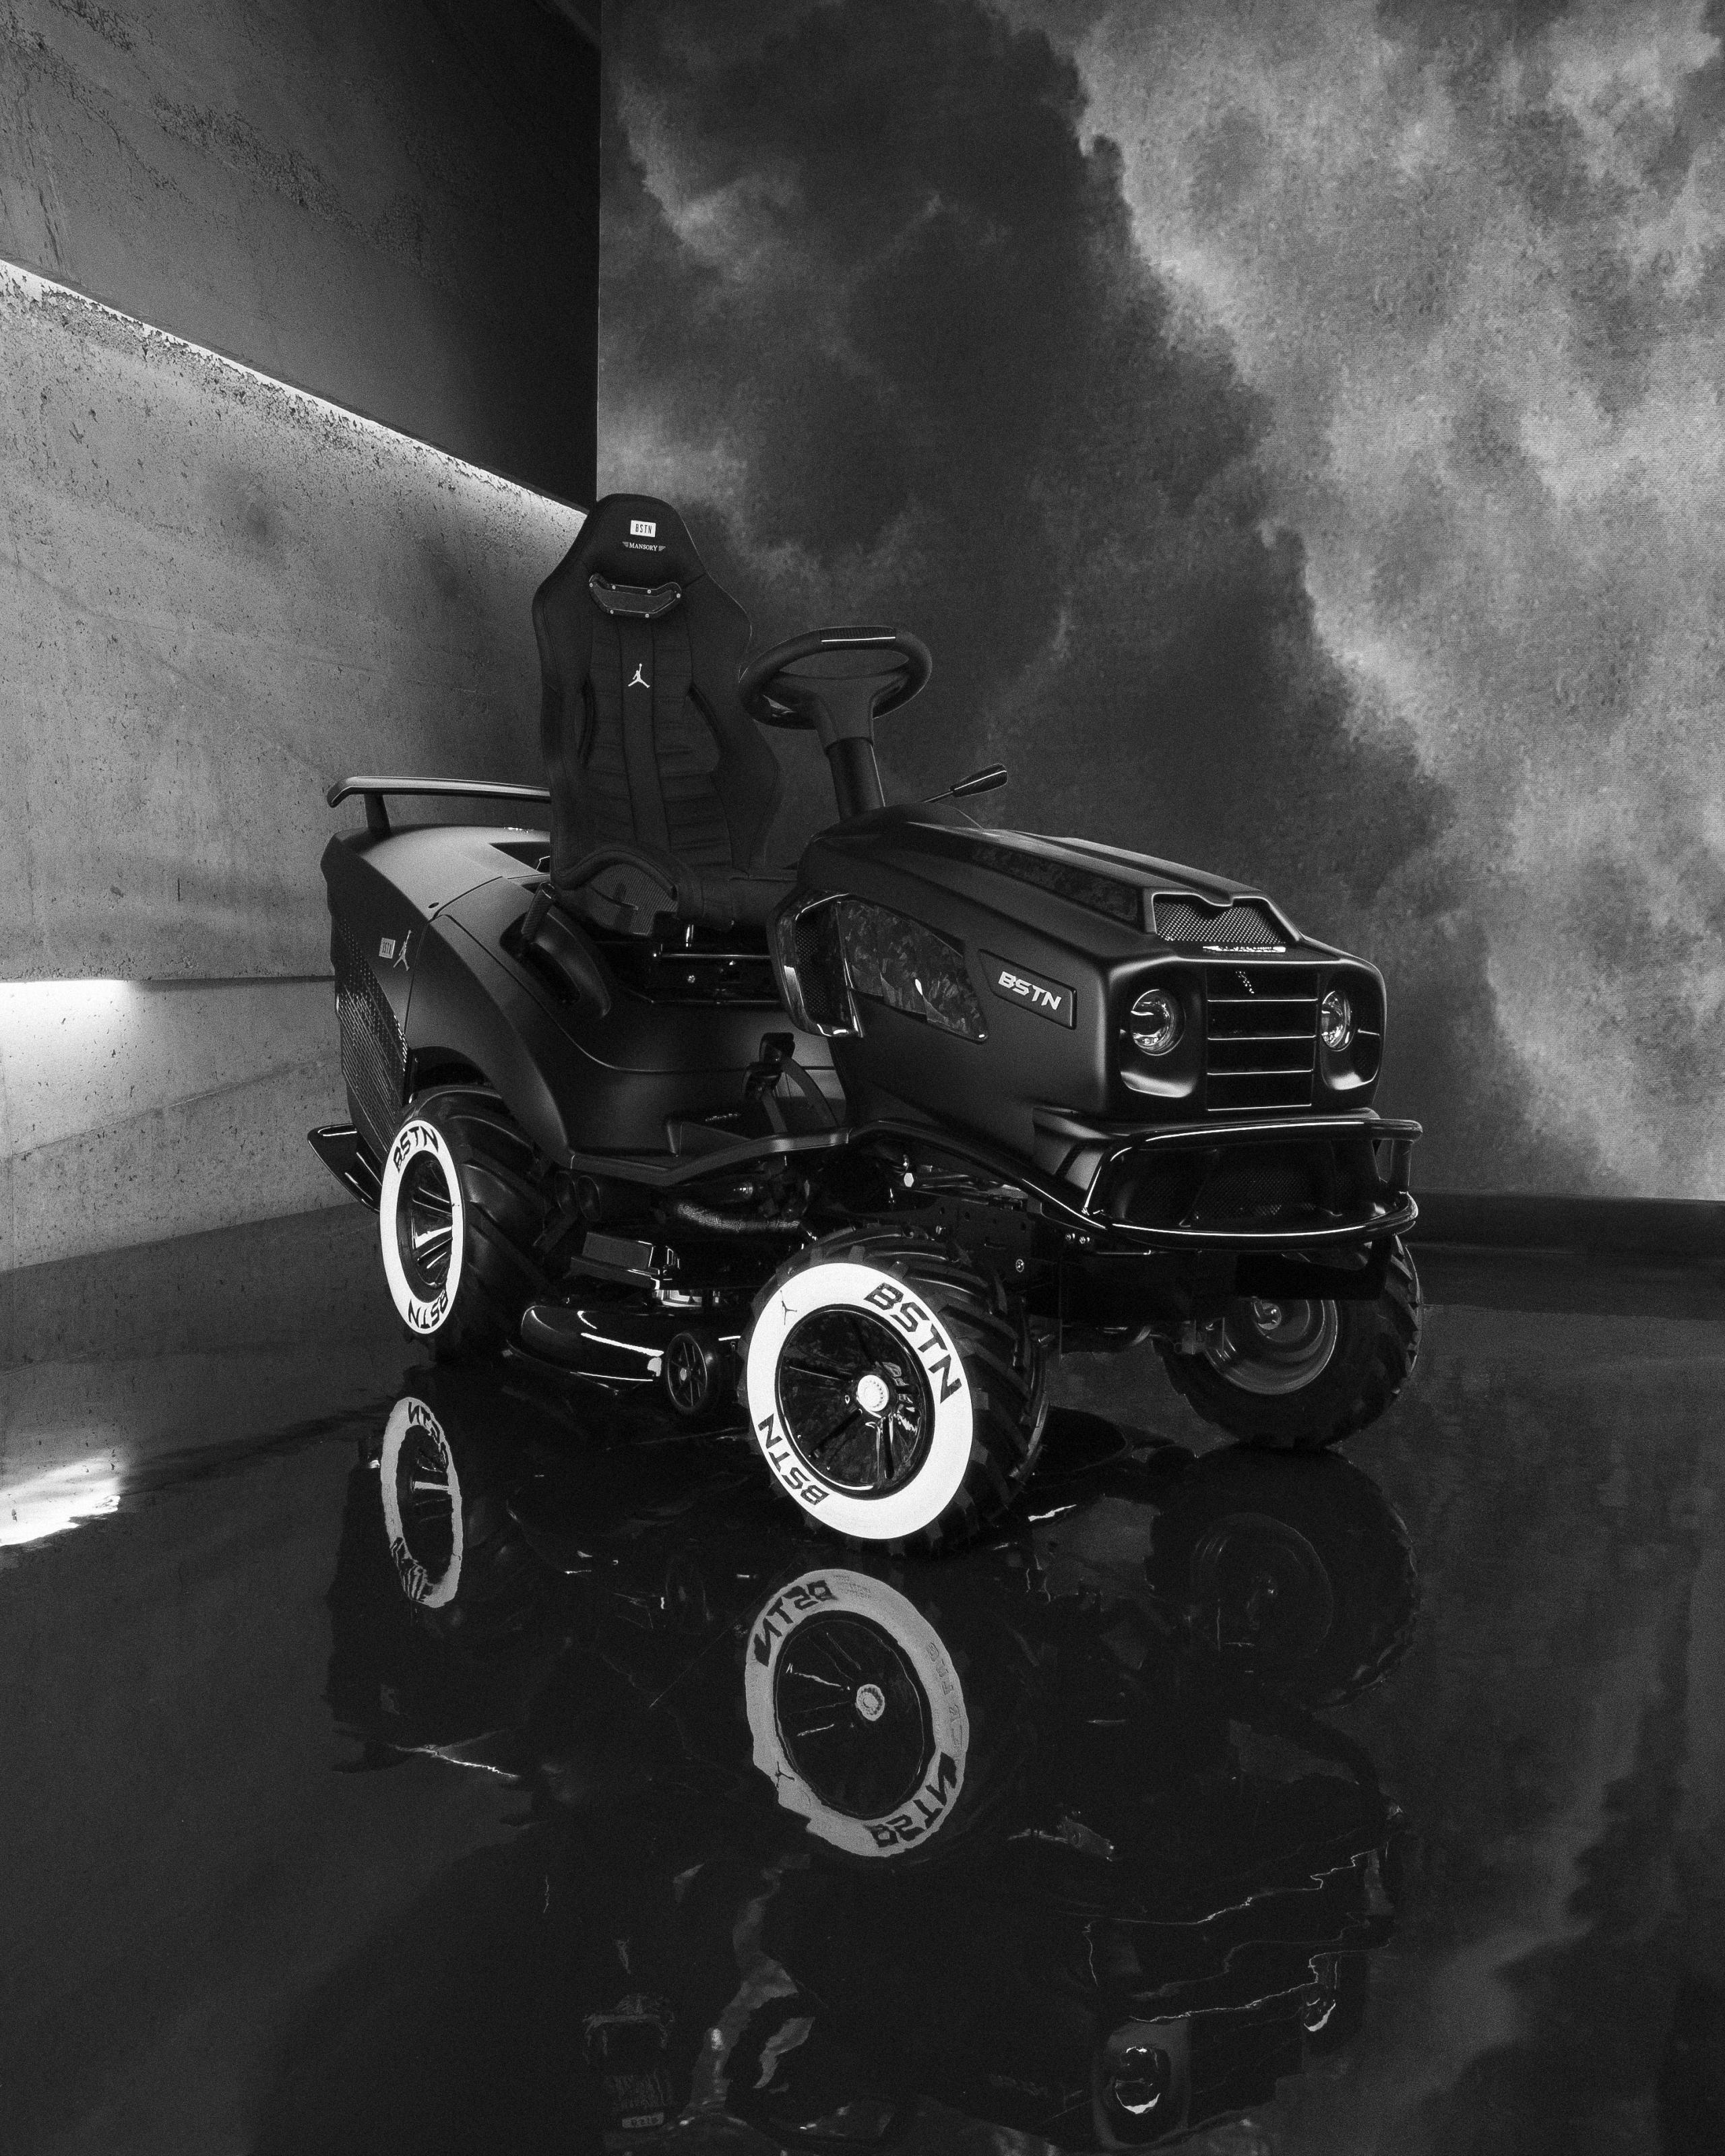 Mansory presents the ride-on lawn mower